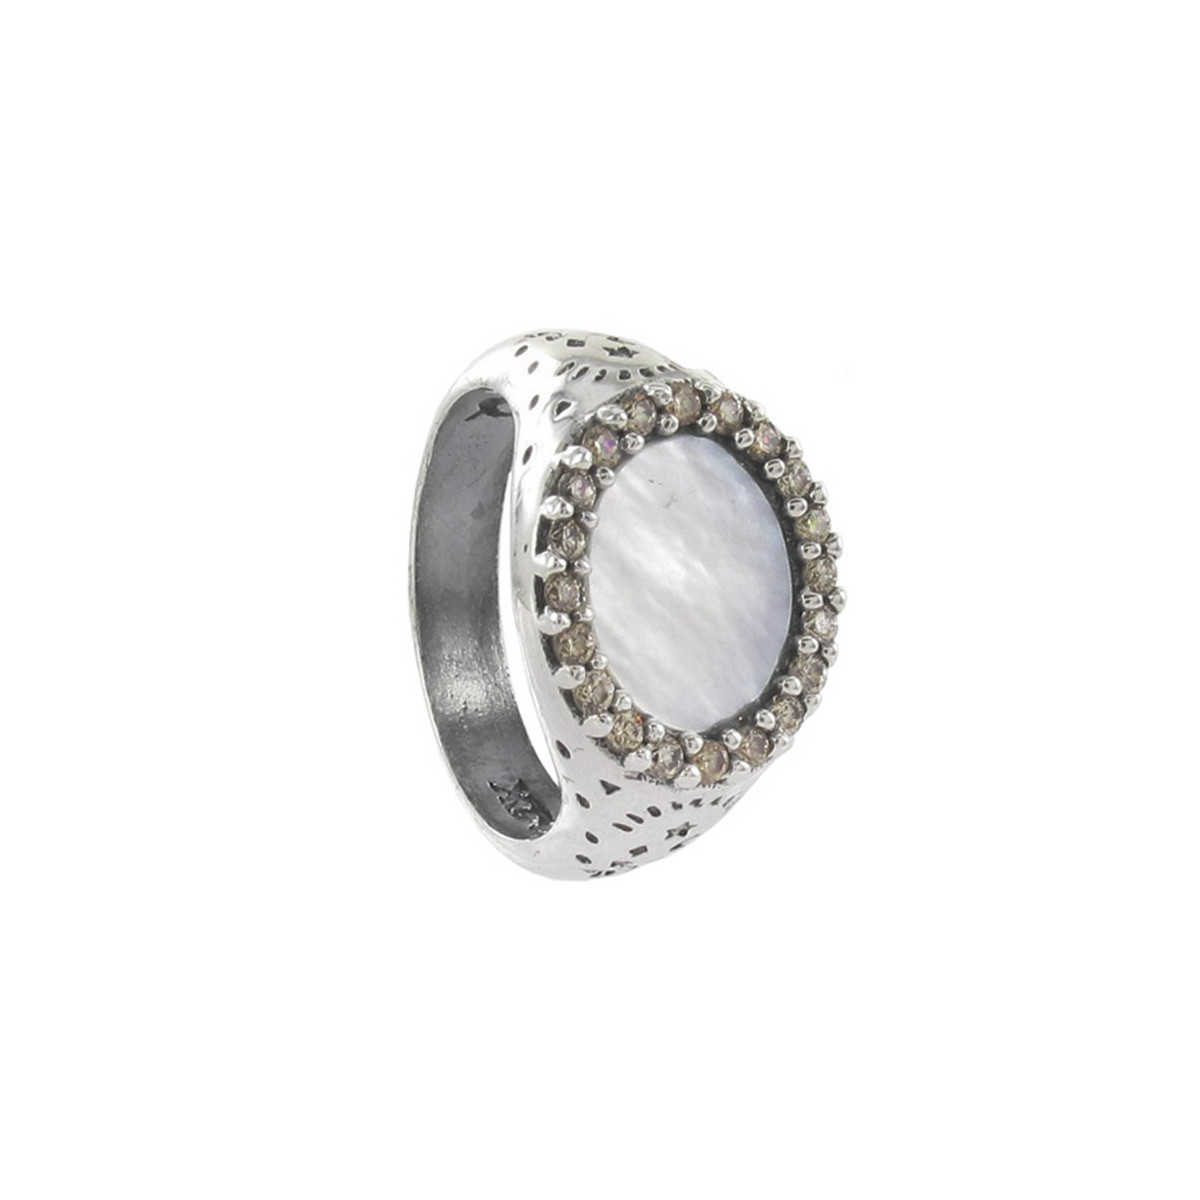 STERLING SILVER RING WITH MOTHER-OF-PEARL AND STONES